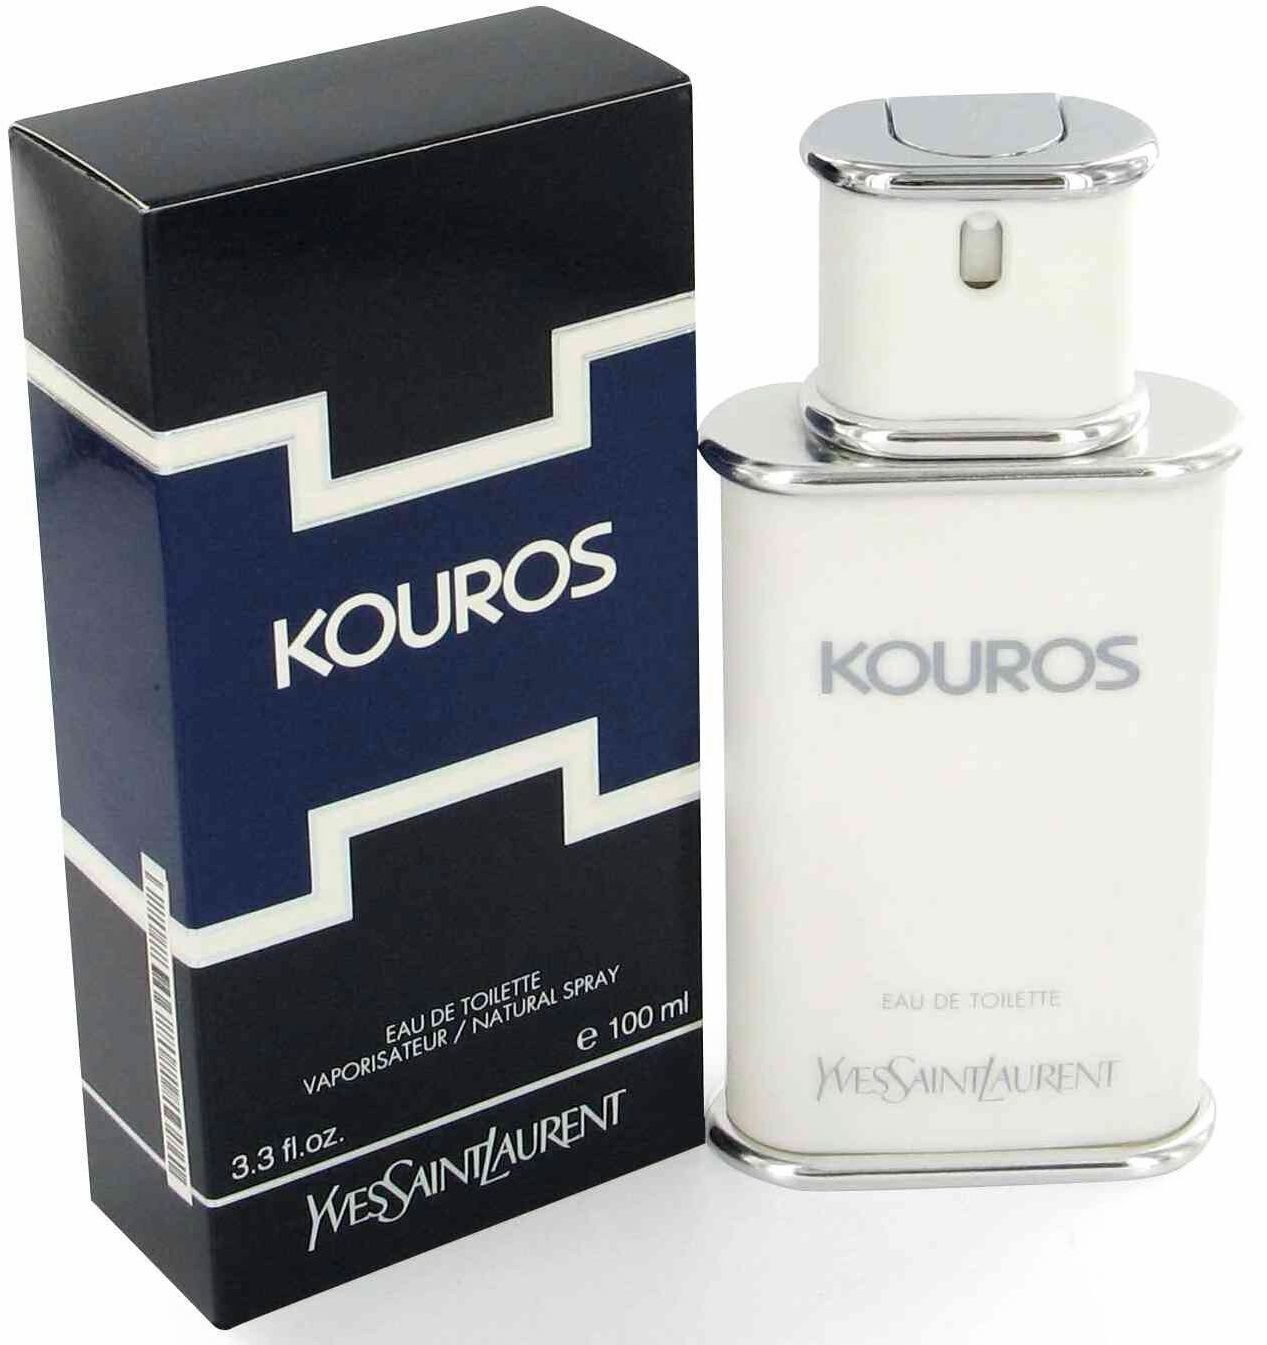 KOUROS yves saint laurent 100ML